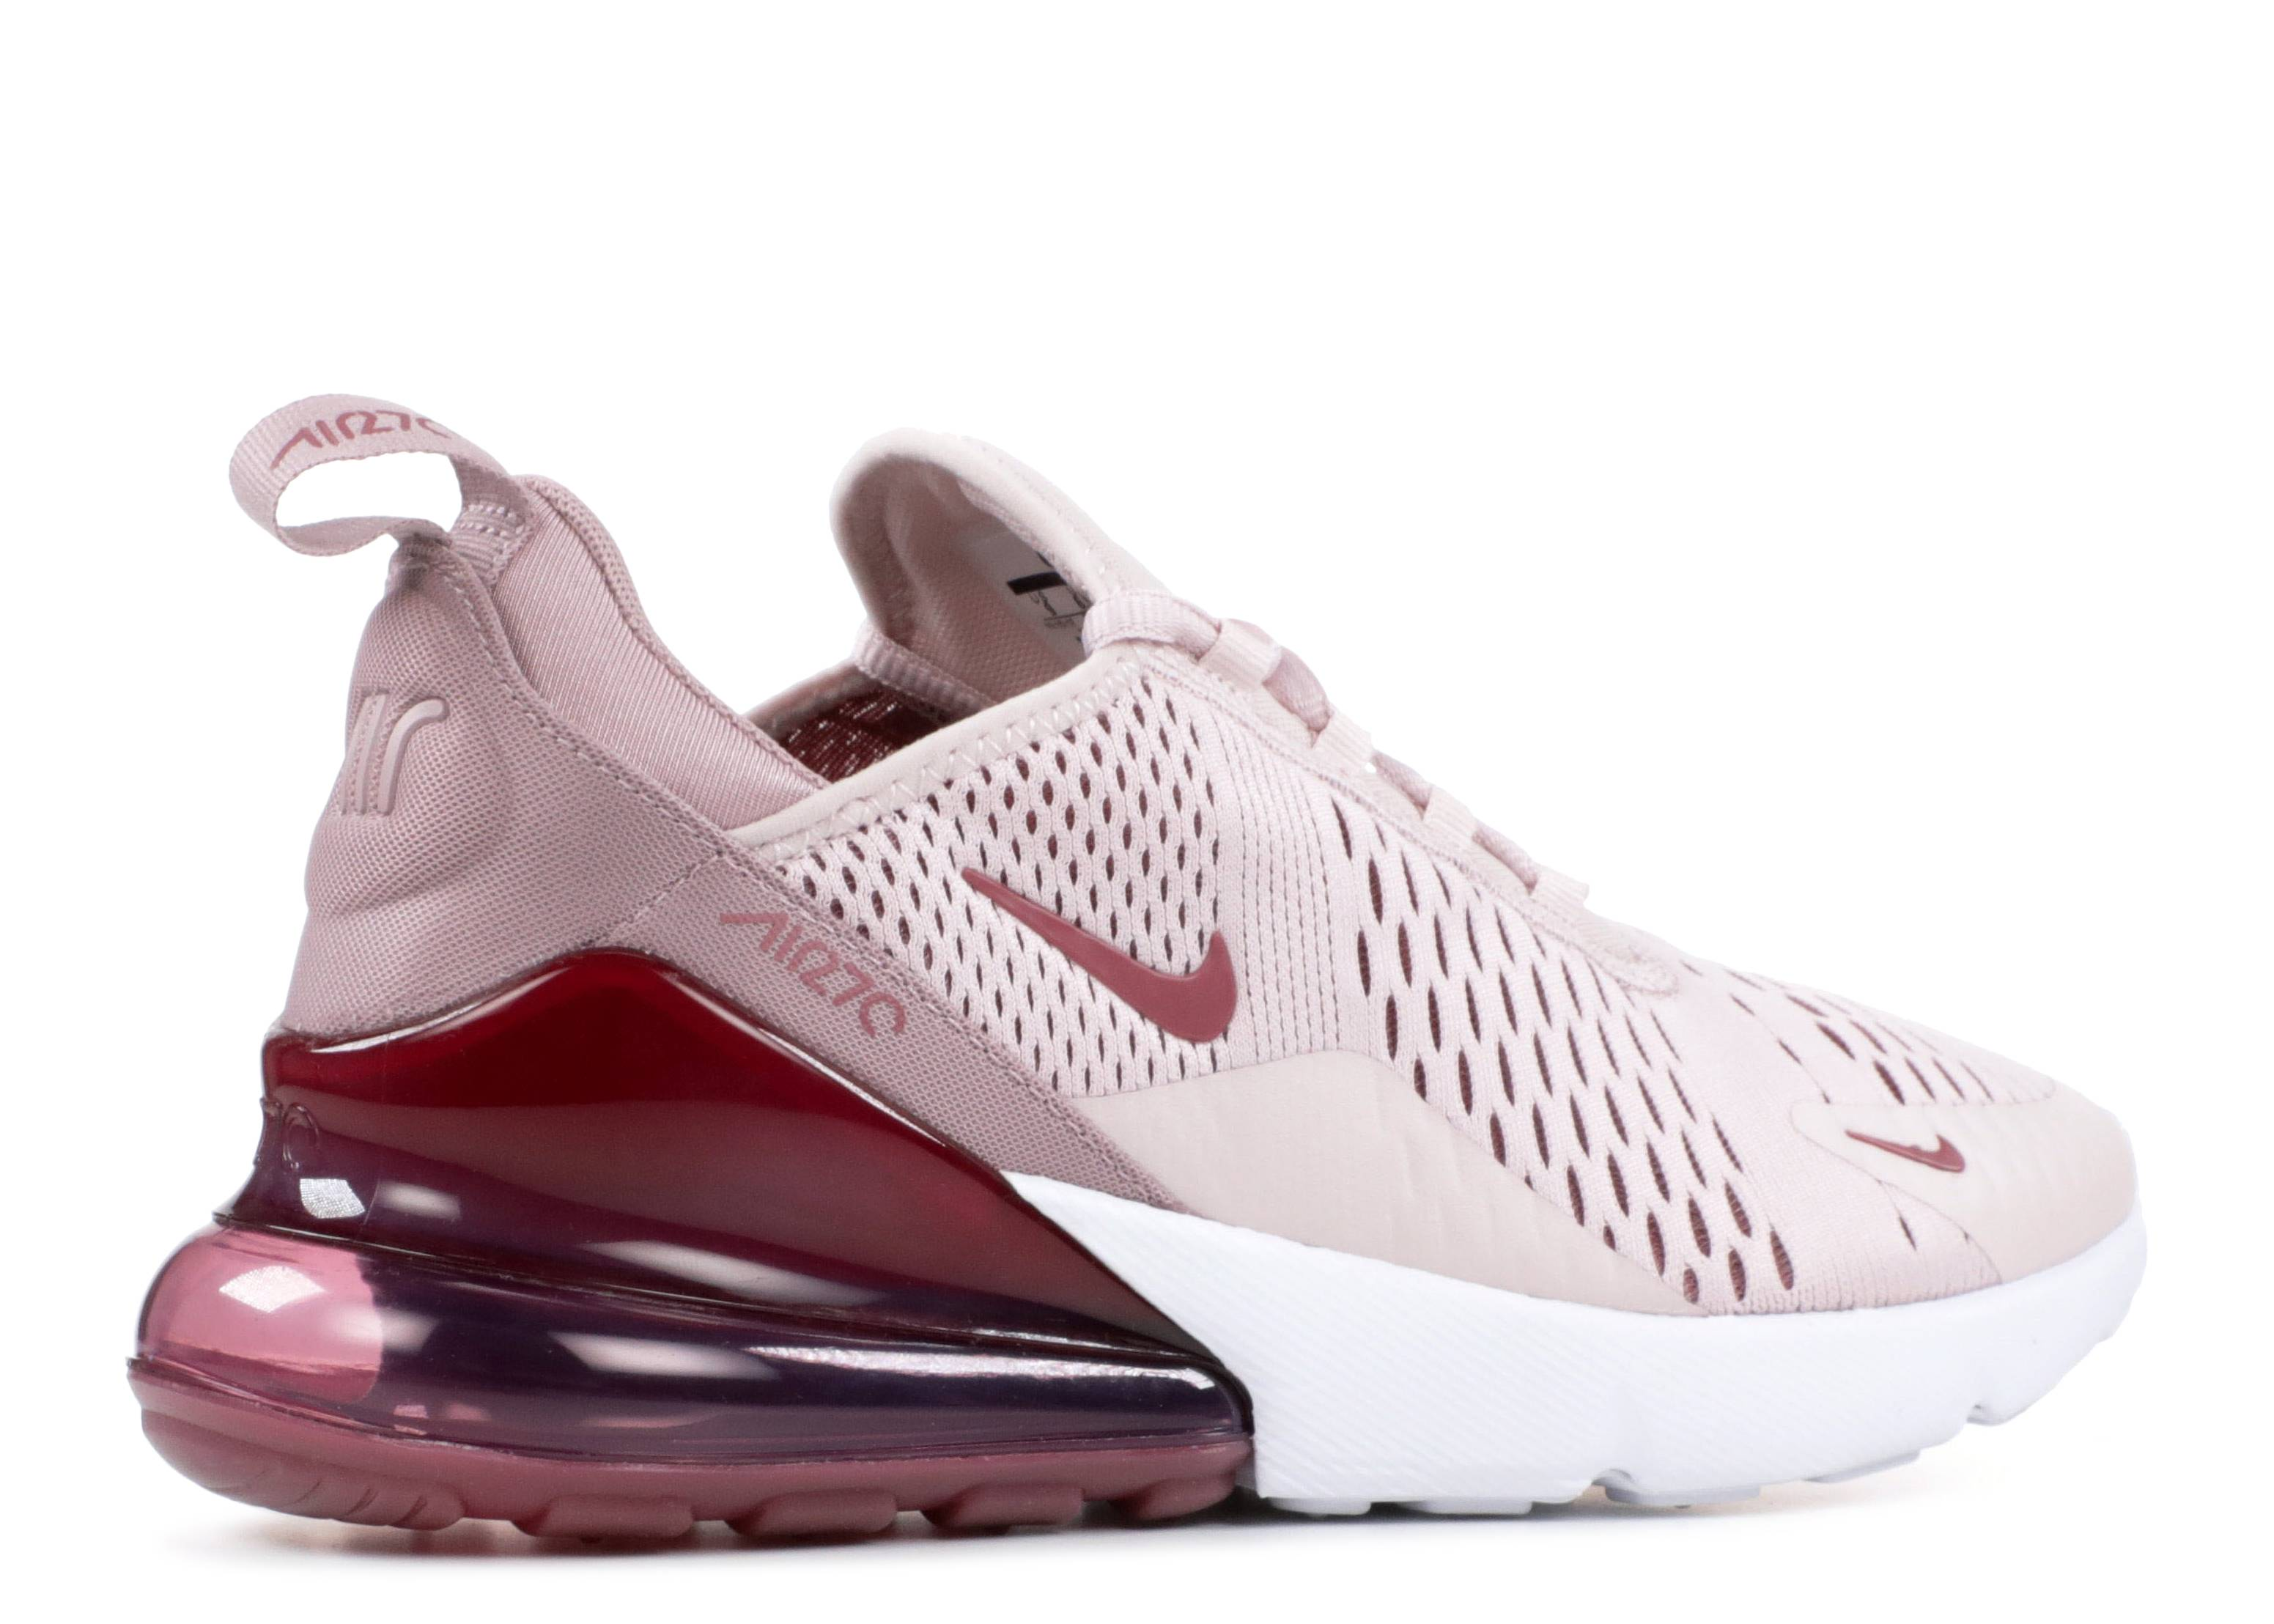 hot sale online 47974 a6d8f W Air Max 270 - Nike - ah6789 601 - barely rose vintage wine   Flight Club